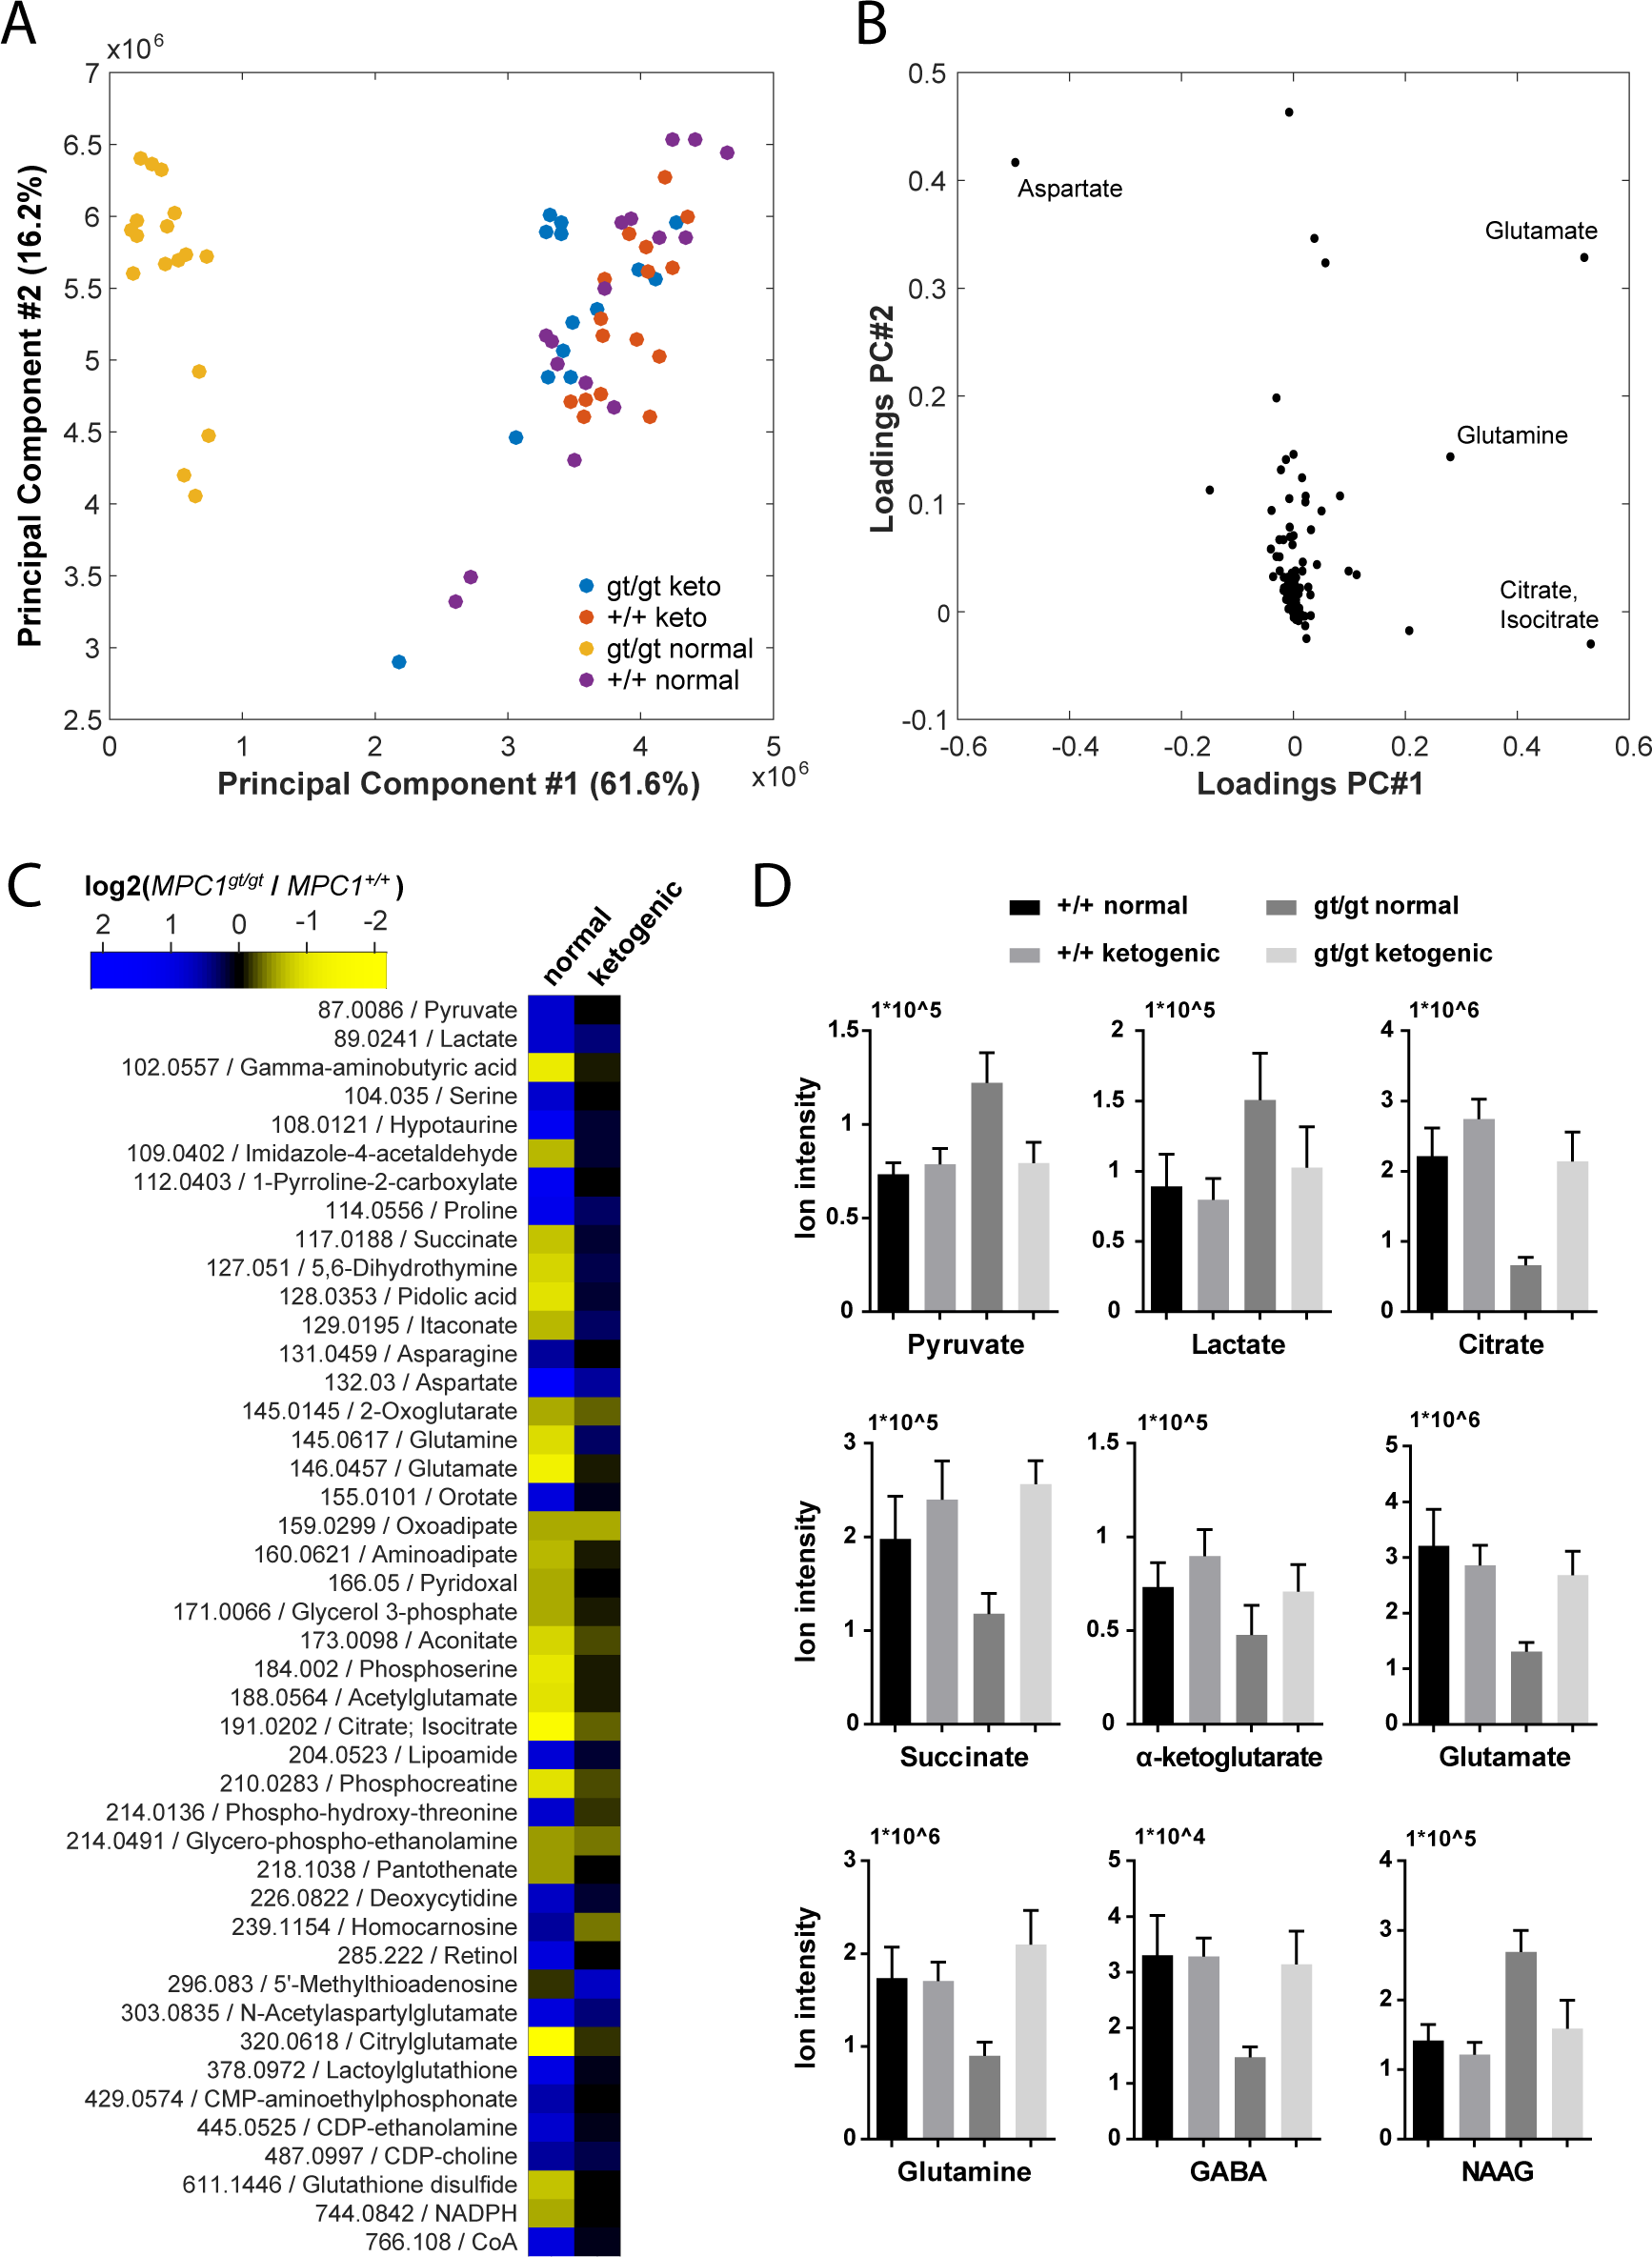 Pleiotropic alterations in the <i>MPC1</i><sup><i>gt/gt</i></sup> E13.5 brain metabolome are rescued by a ketogenic diet.